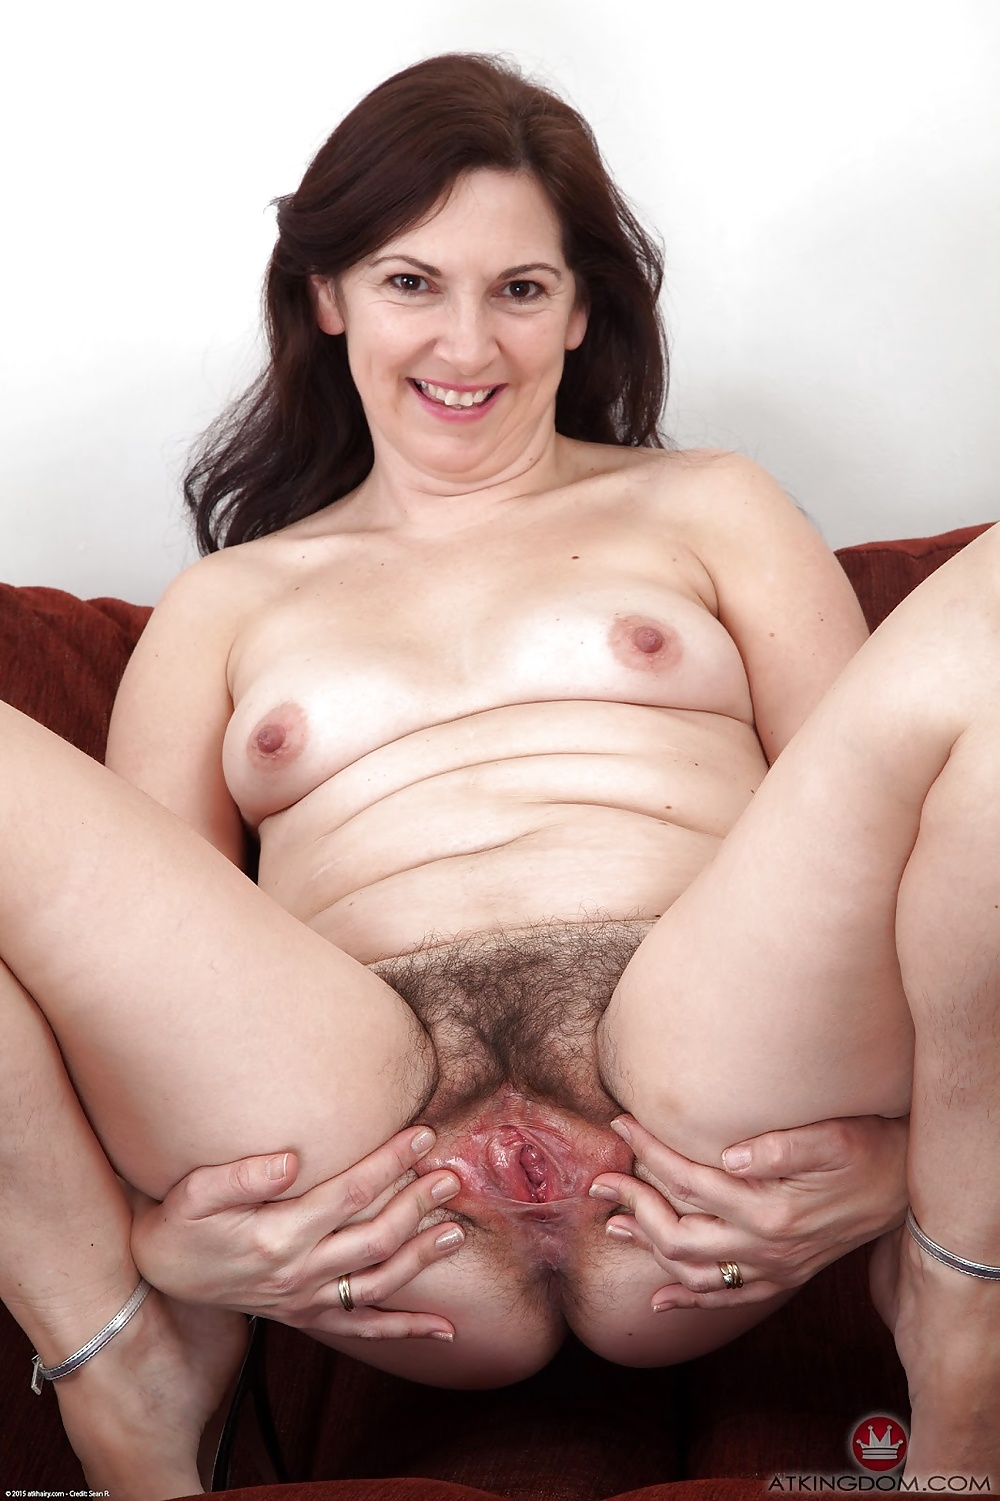 Hairy pussy blonde mama lady adult photos hd